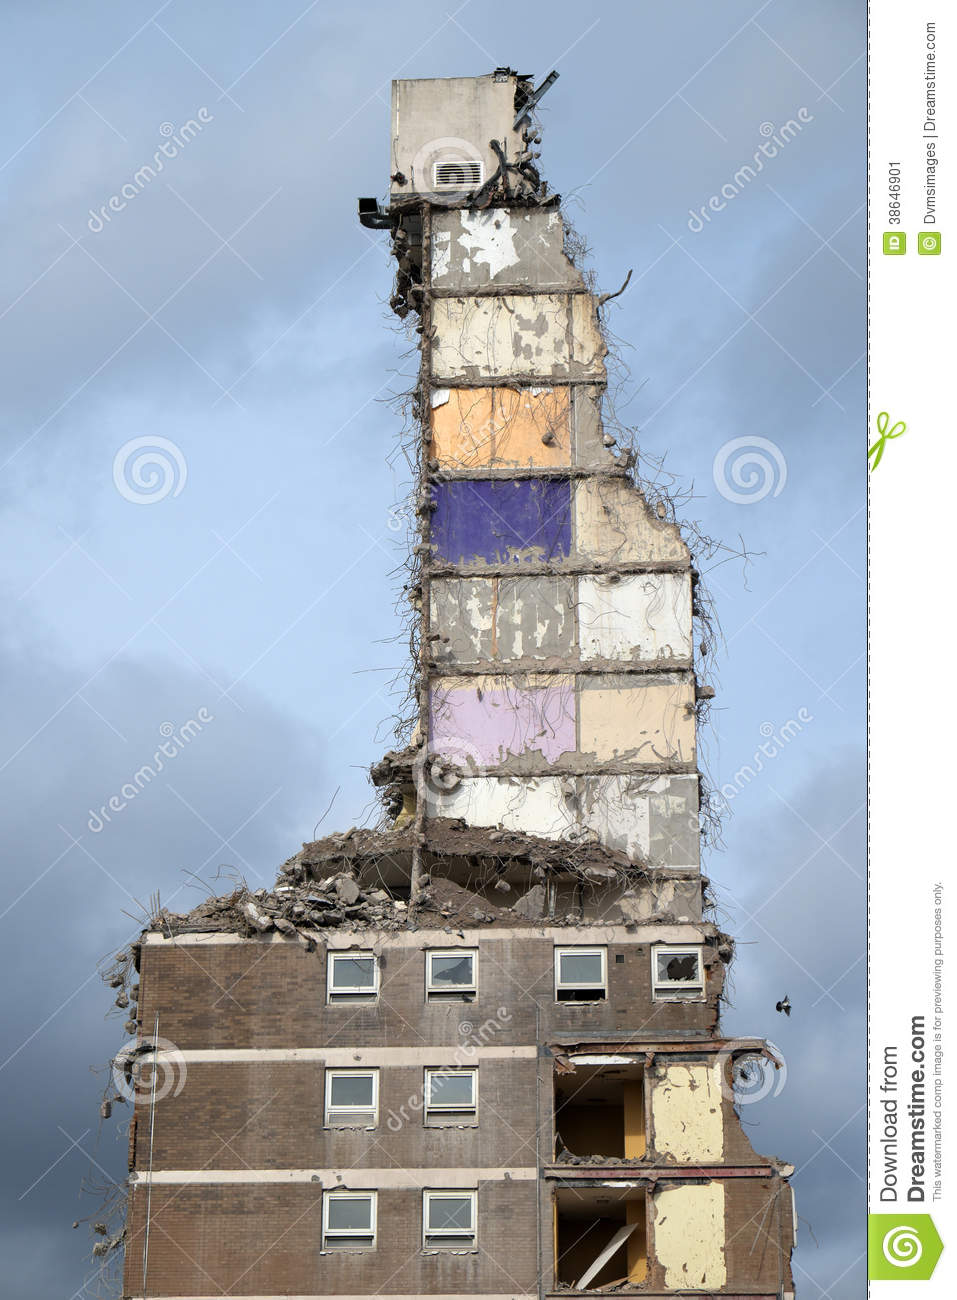 Demolition Of Tower Block Stock Image.